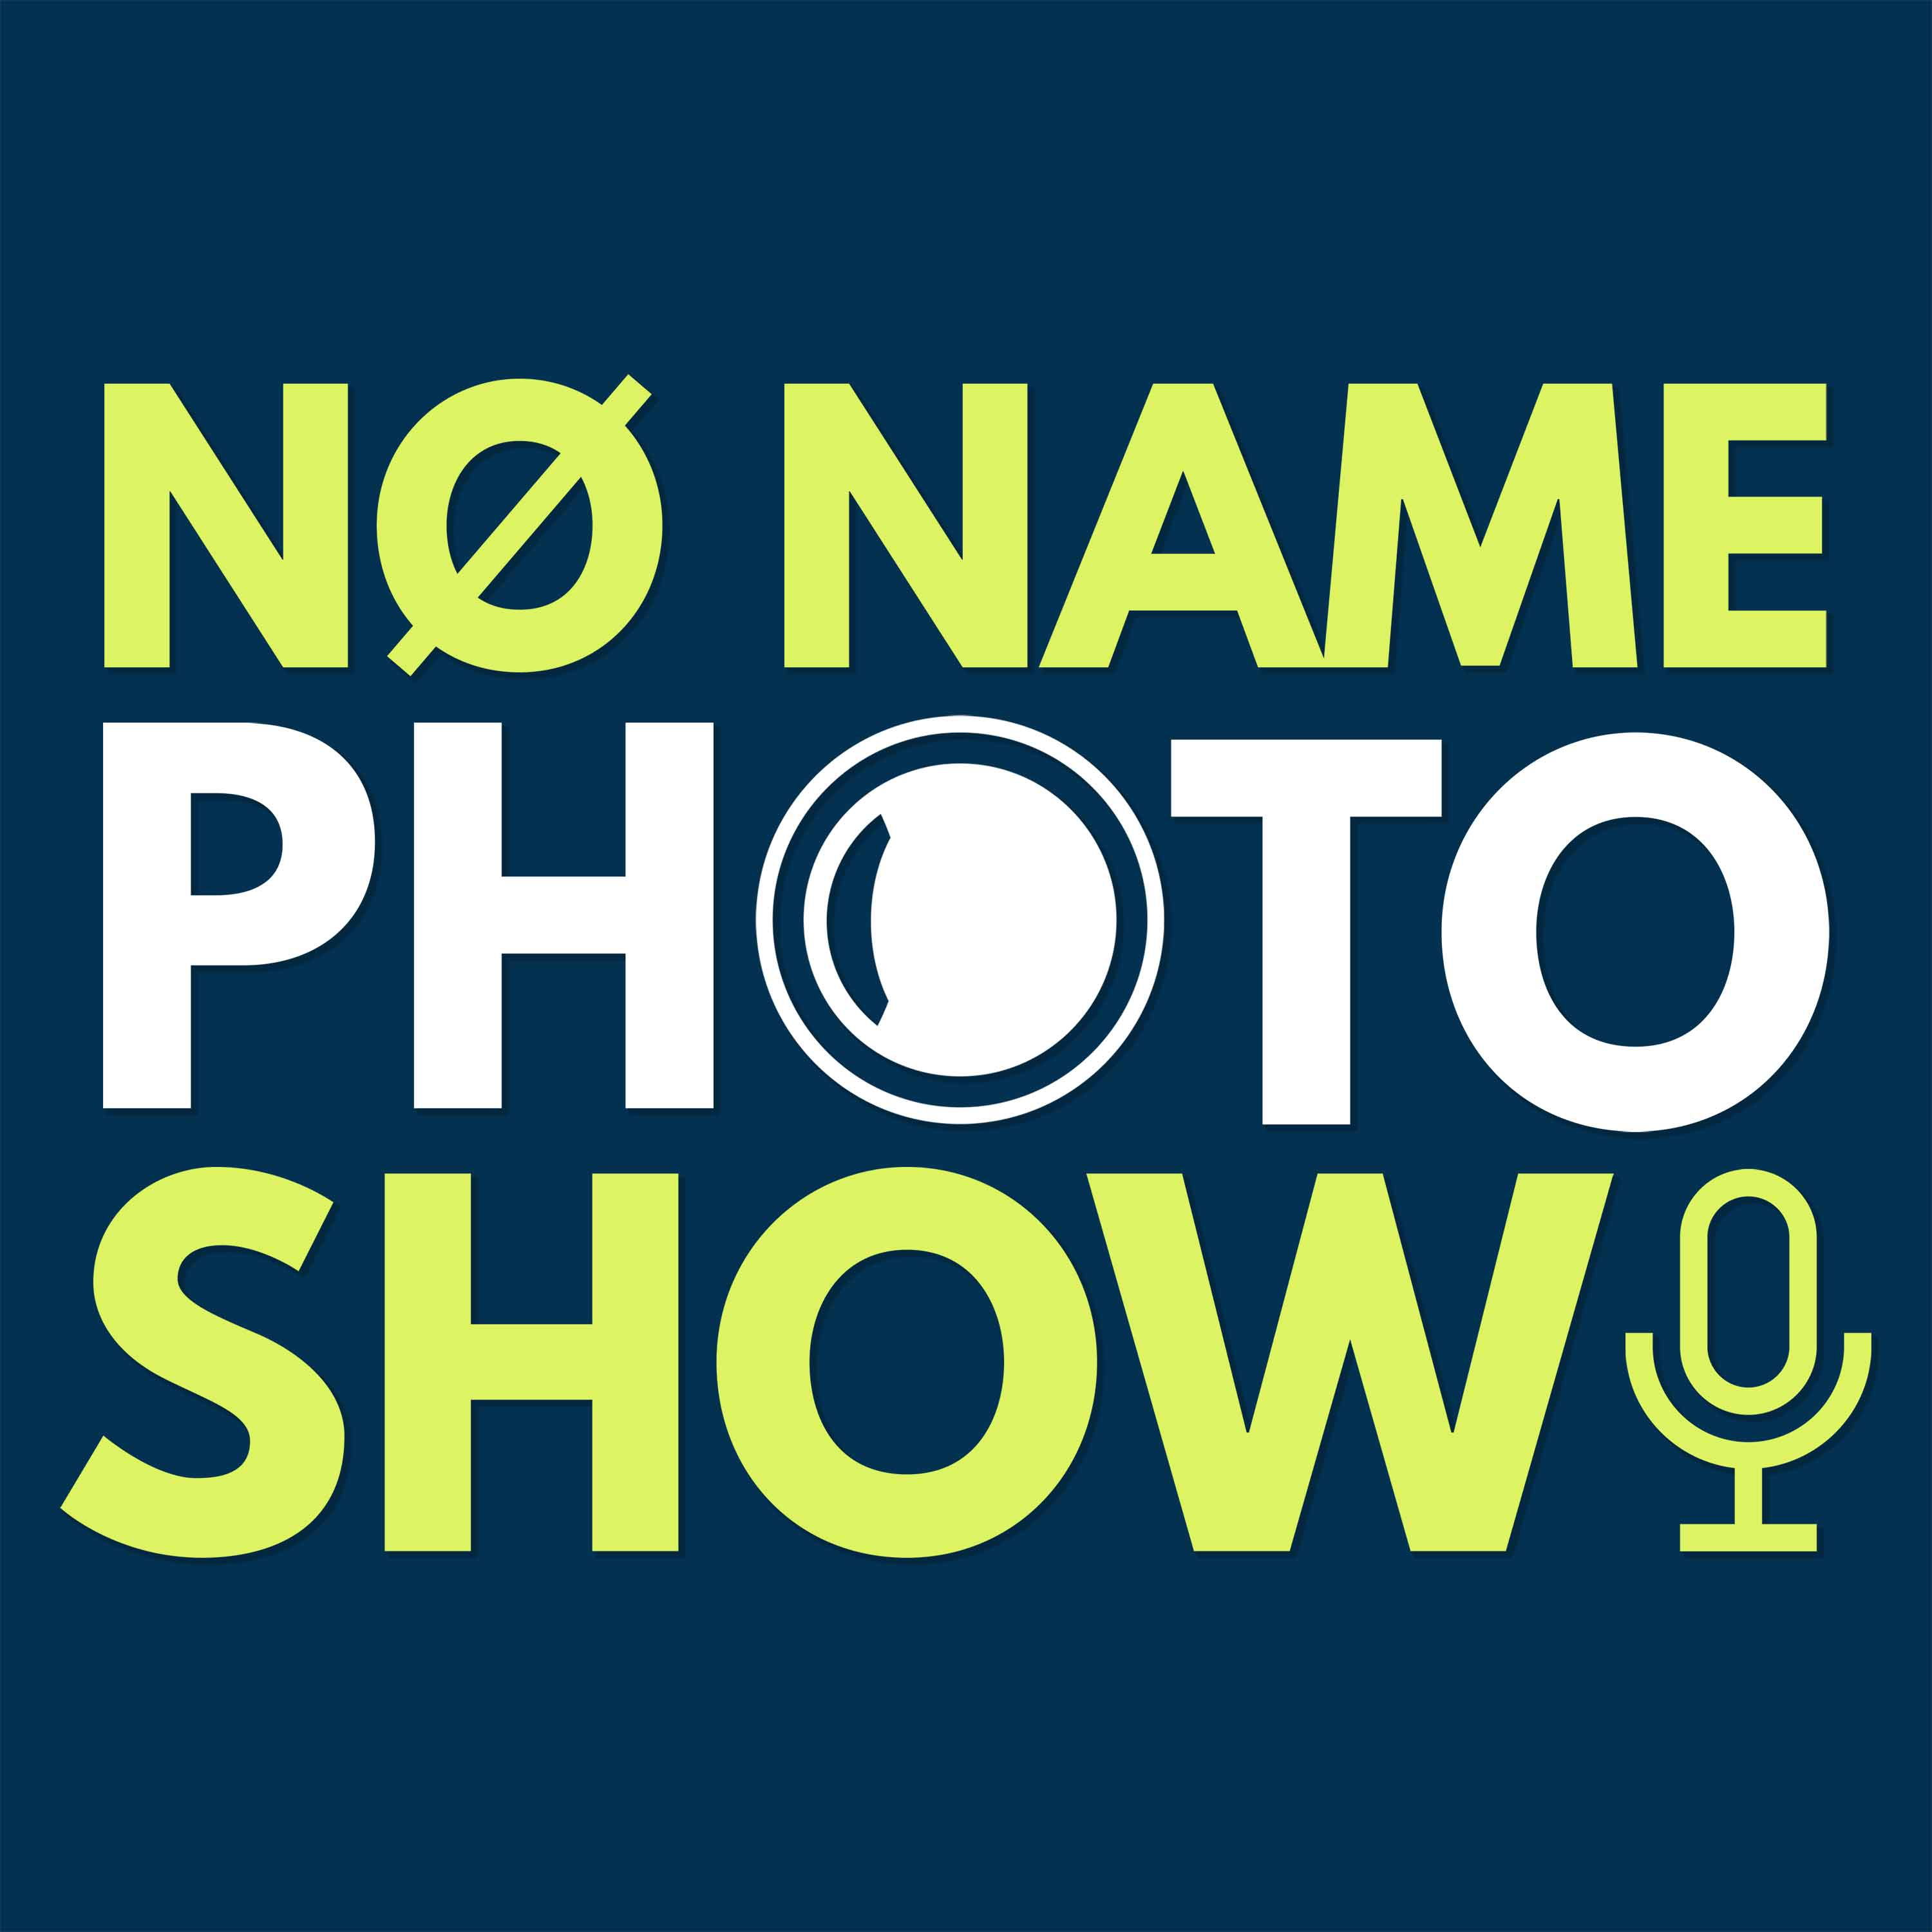 Ep. 048: Top Photo Stories of 2018 (with Alex Cooke)